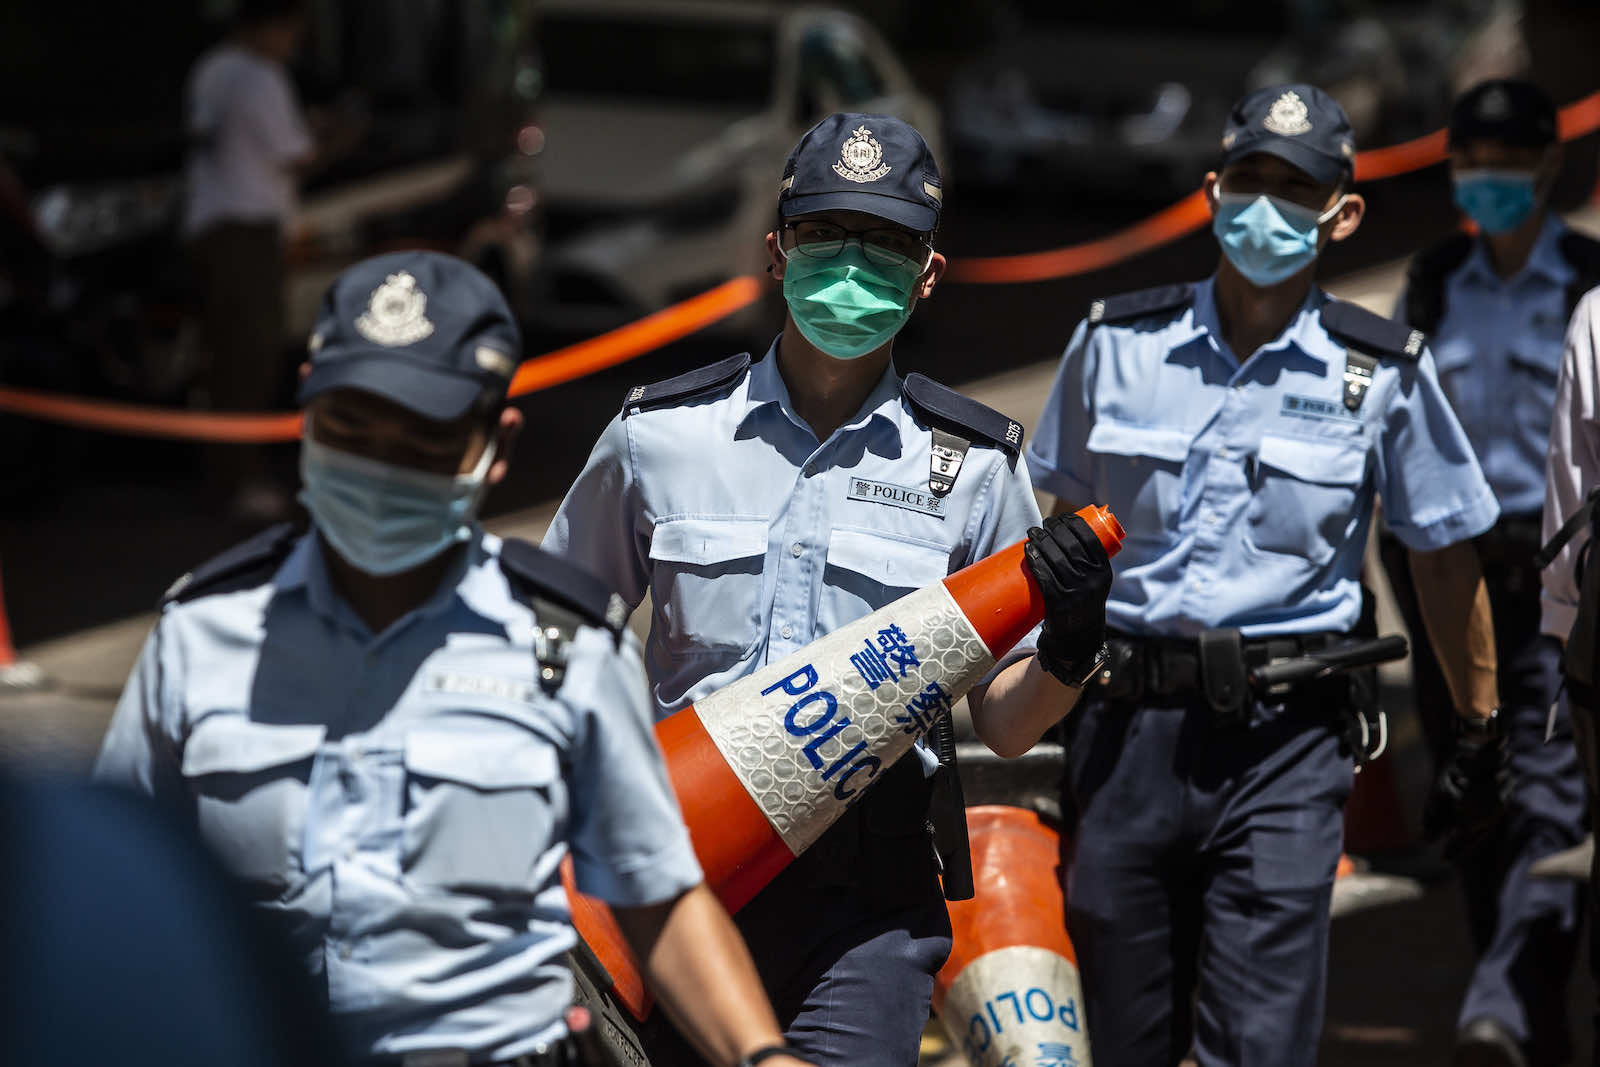 Police set up a cordon outside West Kowloon court in Hong Kong on 6 July (Isaac Lawrence/AFP via Getty Images)